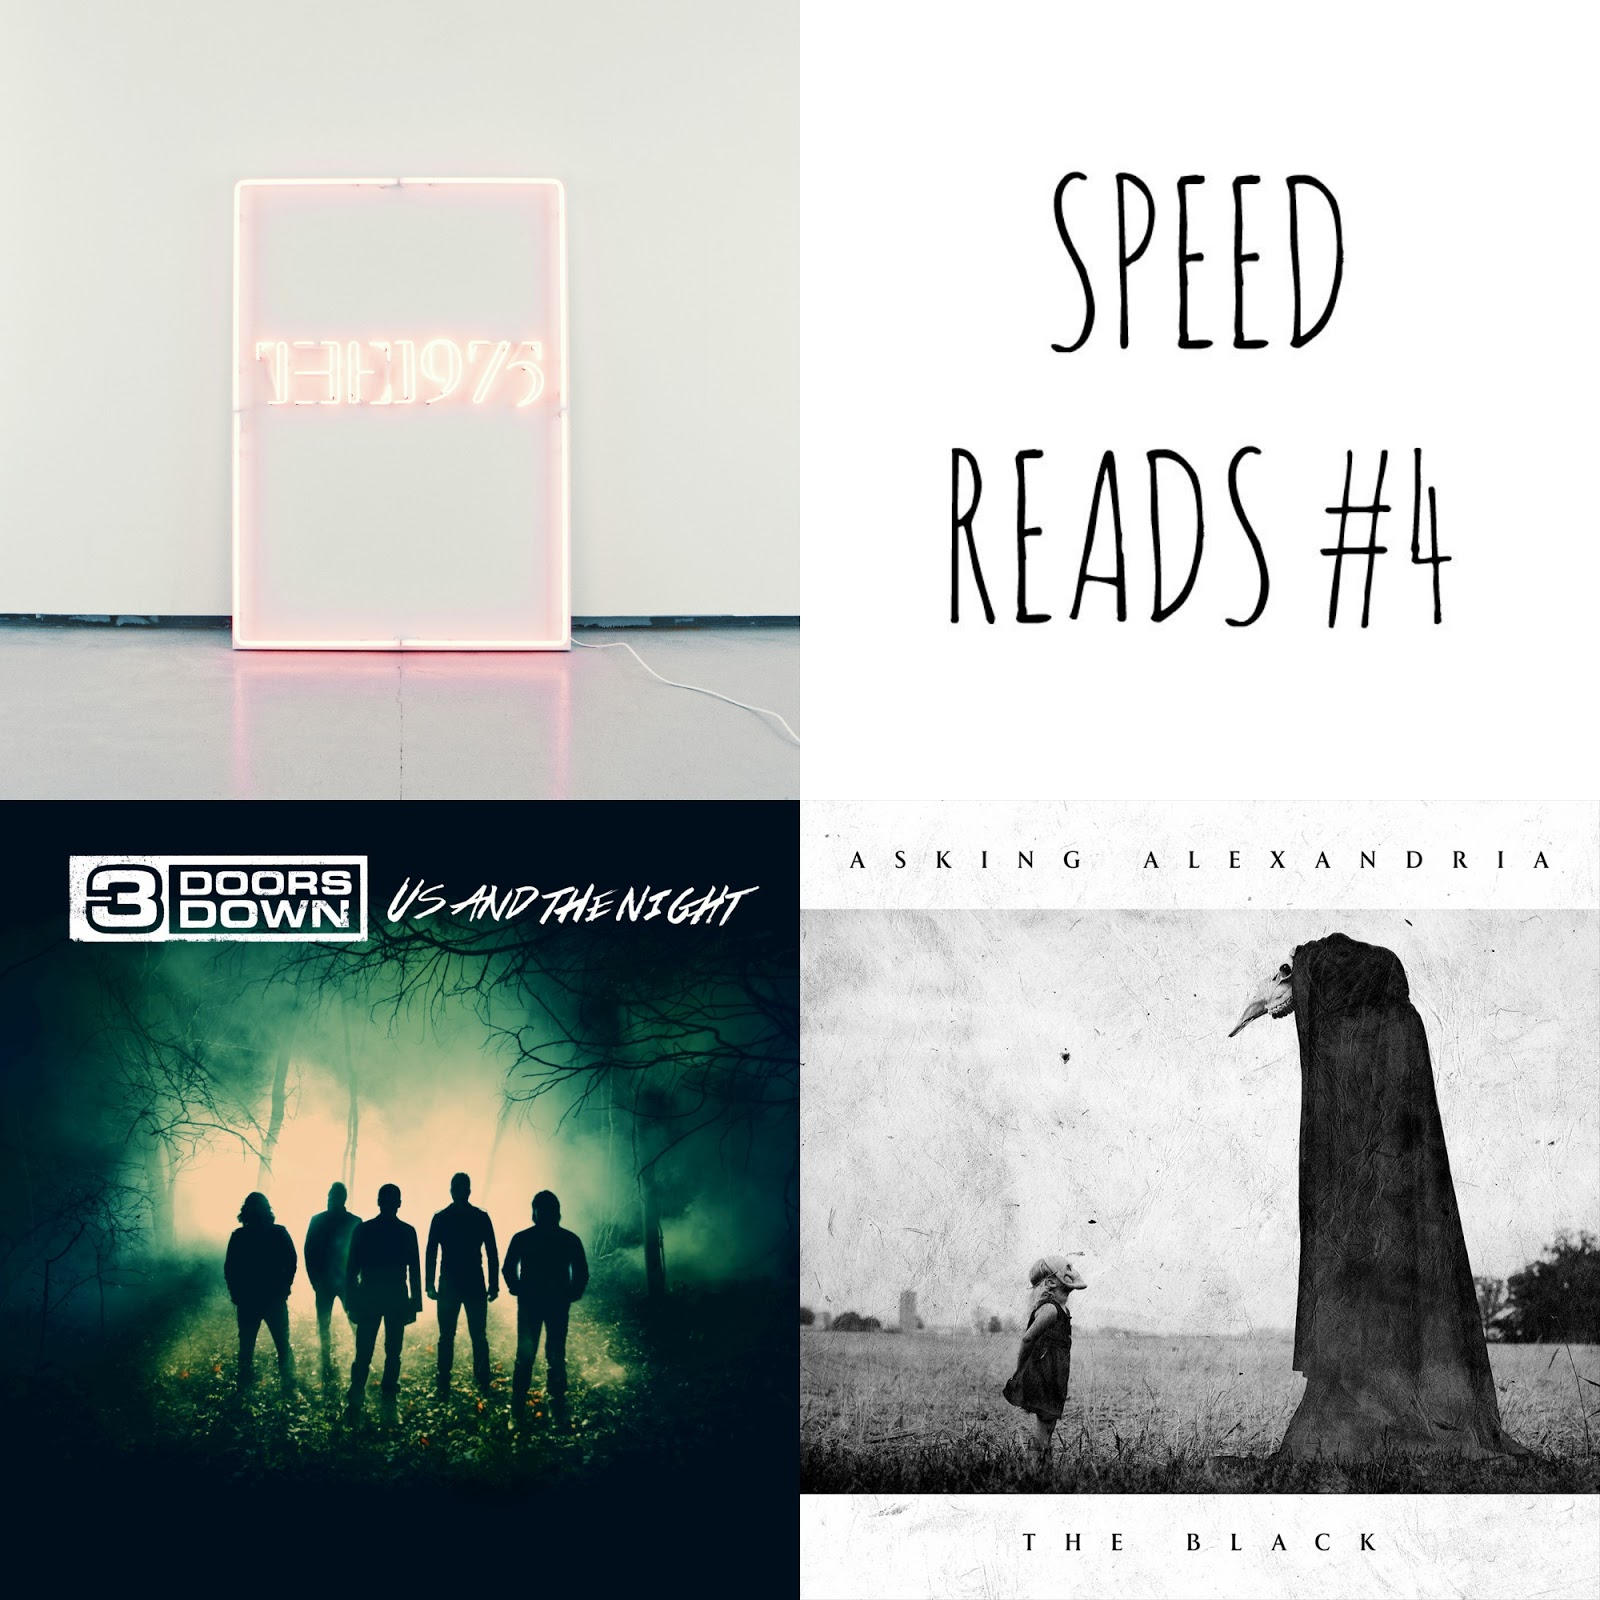 Inspired By Reviews Speed Reads The 3 Doors Down Asking